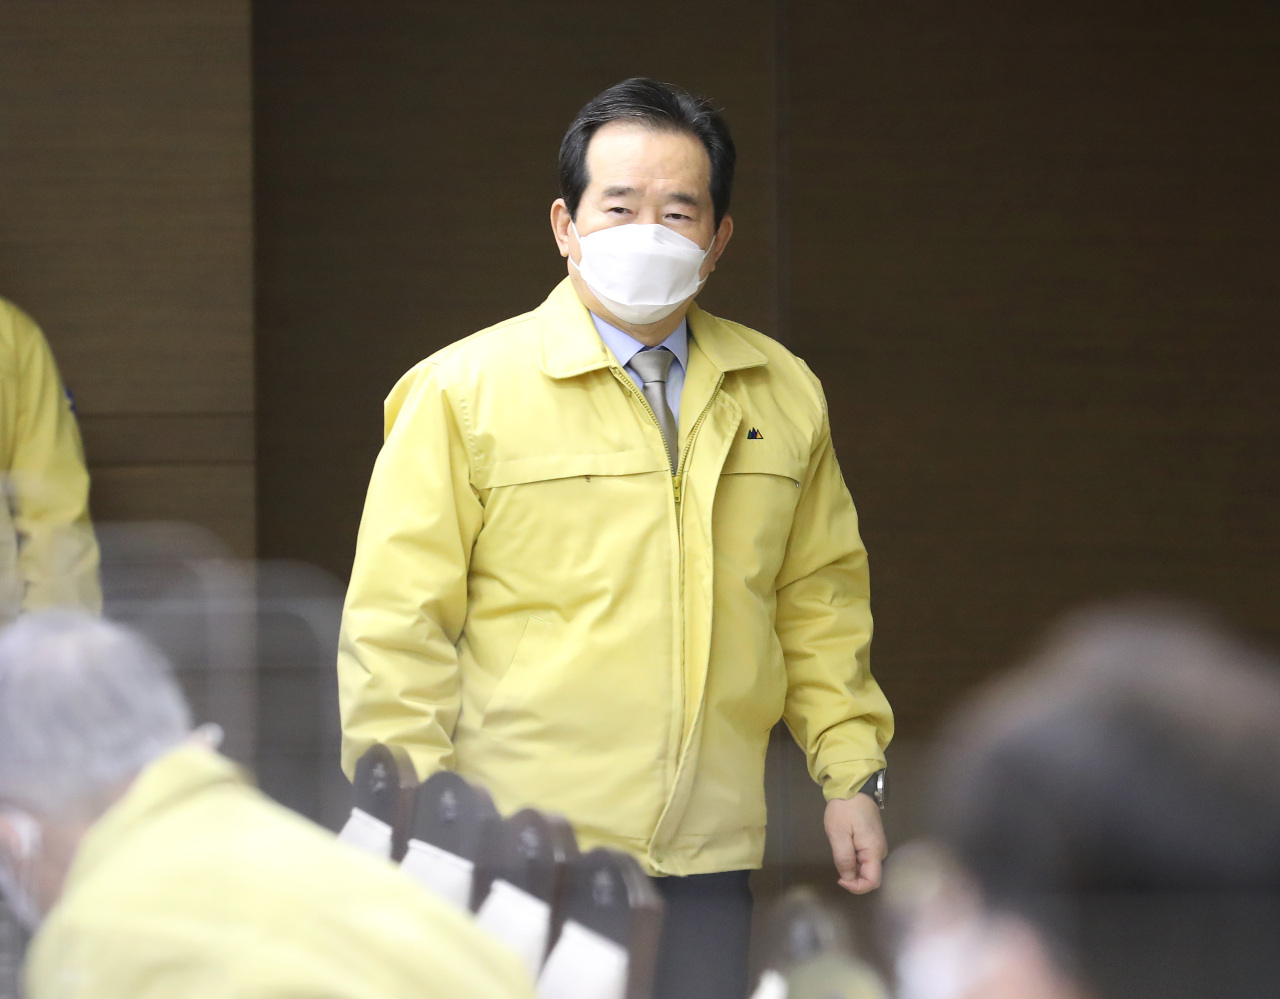 Prime Minister Chung Sye-kyun enters a meeting of the Central Disaster and Safety Countermeasure Headquarters held at the government complex in Sejong on Tuesday. (Yonhap)